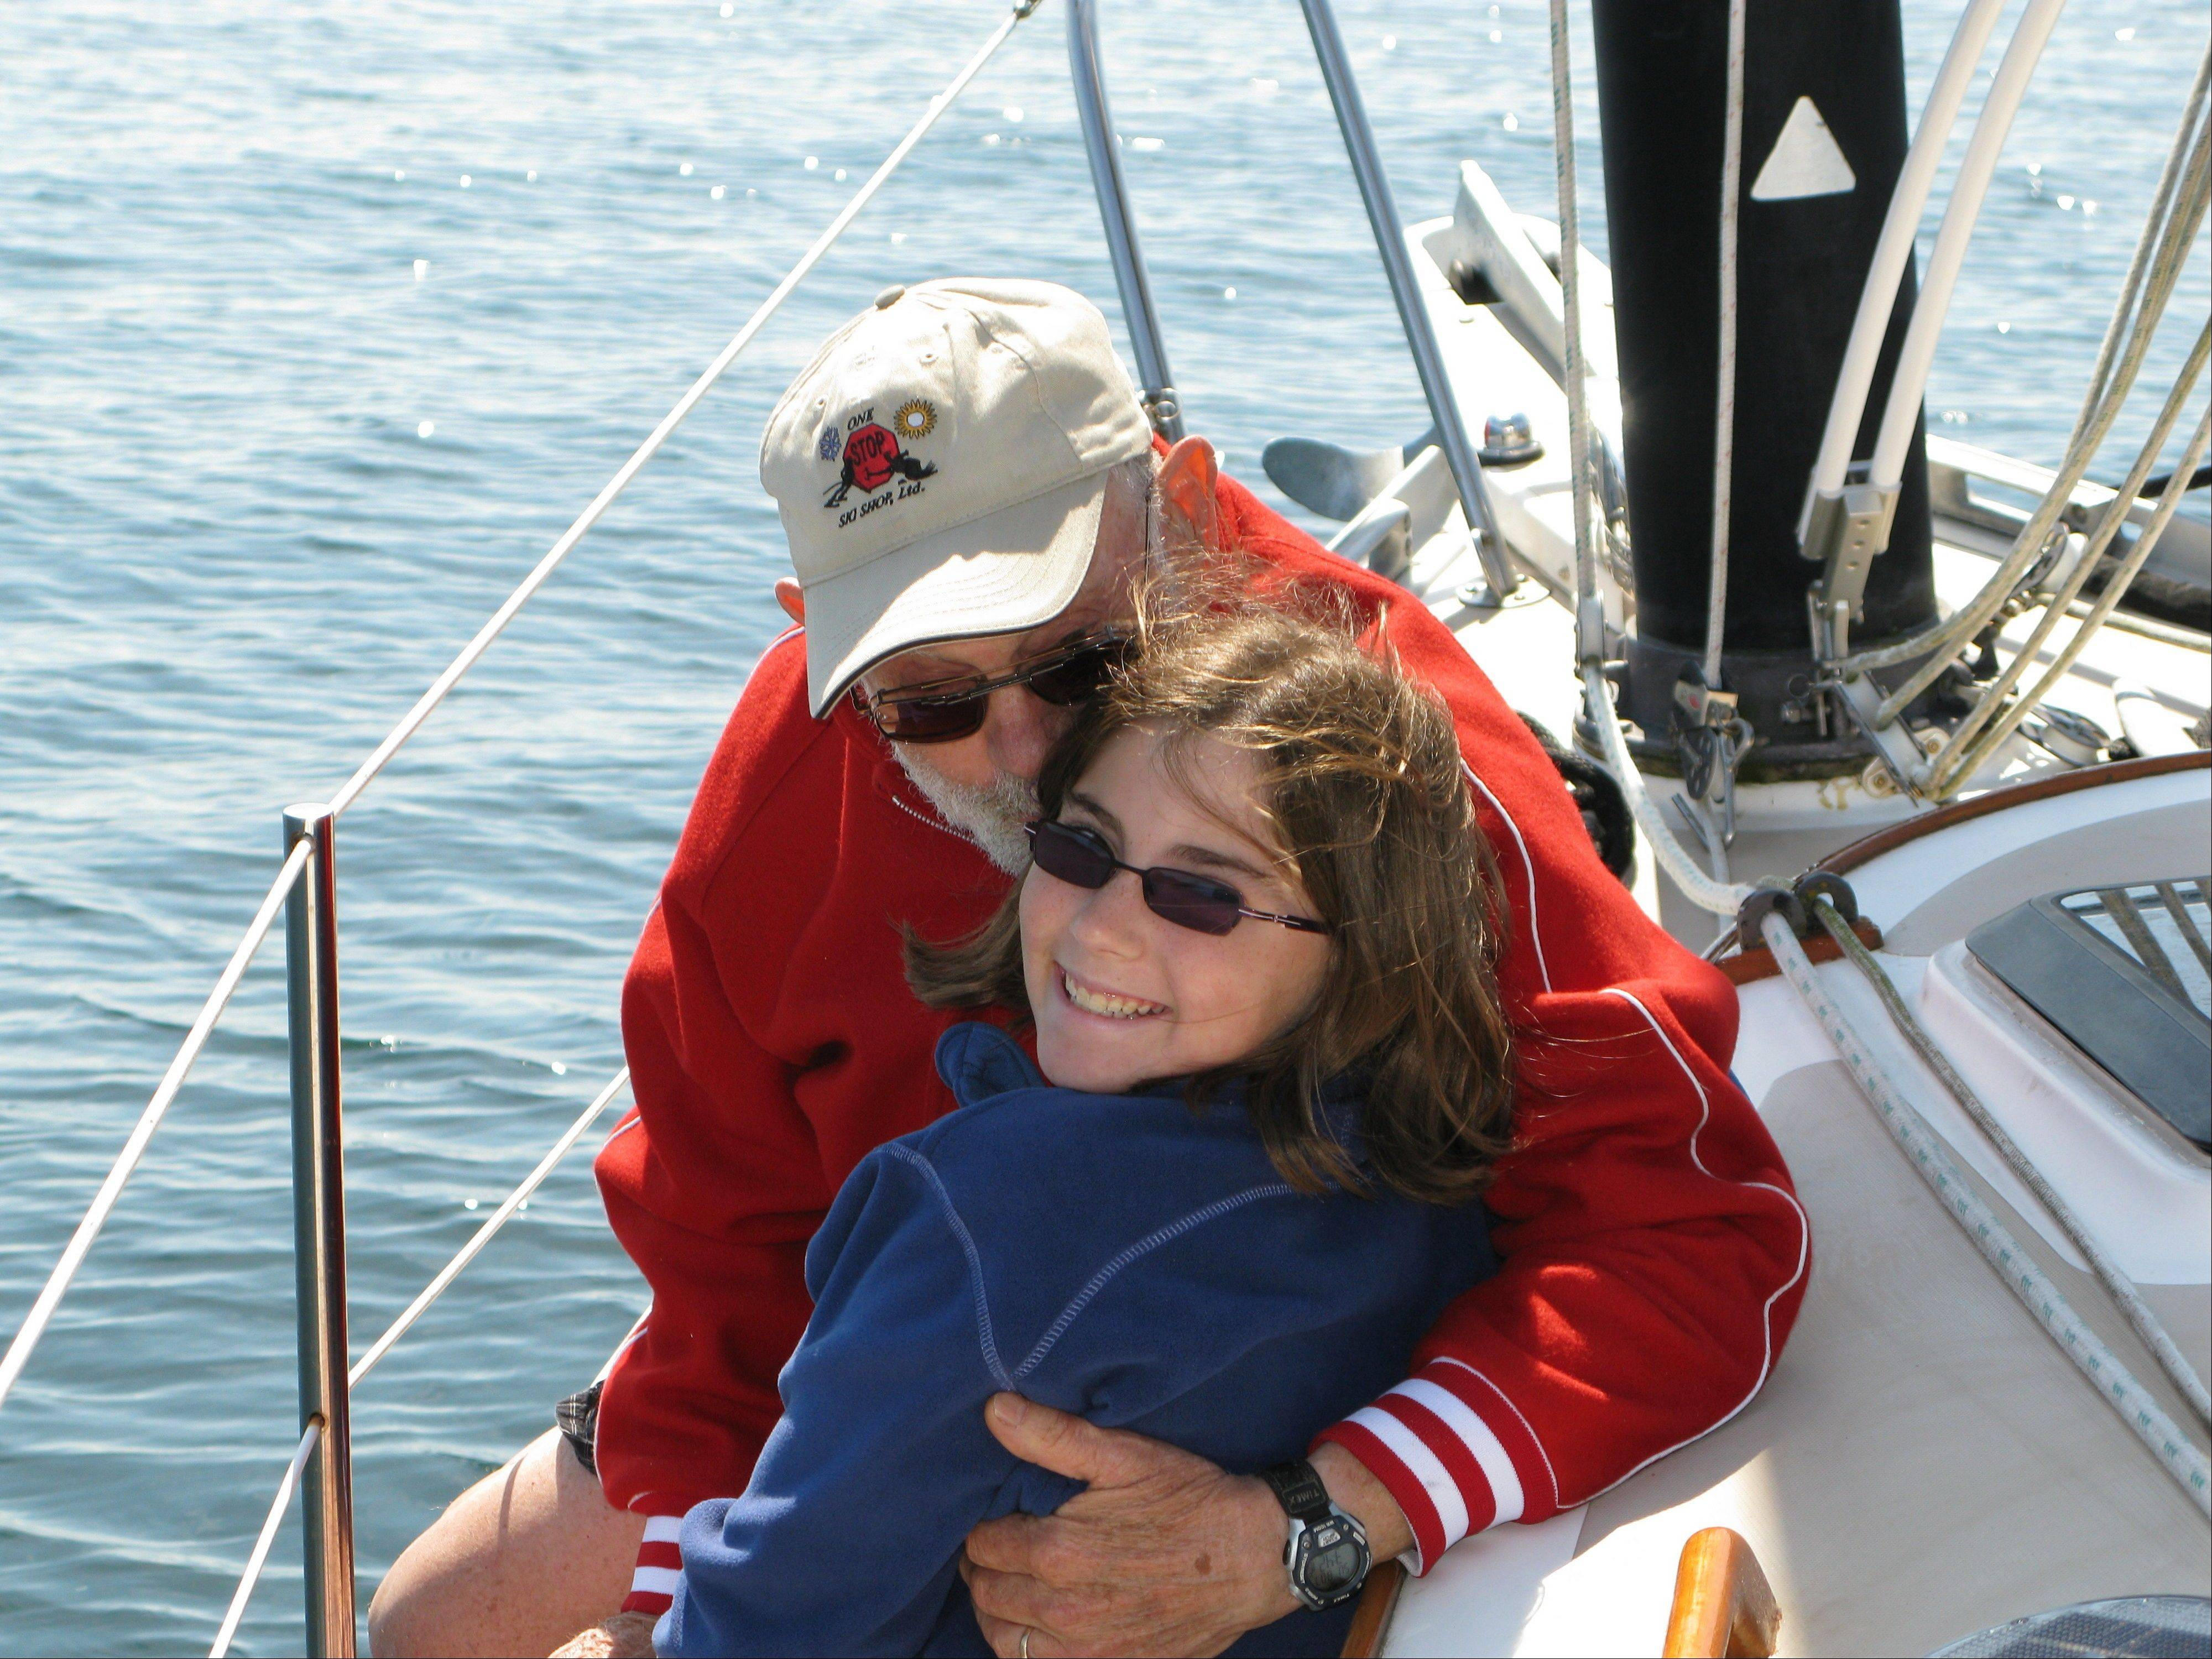 Nina Shelanski, 11, and her grandfather, Jerry Schwartz, enjoy a quiet moment during a family sailing trip in Blaine, Wash. Schwartz has cared for his granddaughter while her parents took a rare vacation without her, but it can be challenging for couples looking to get away without their children to line up help from relatives or sitters.